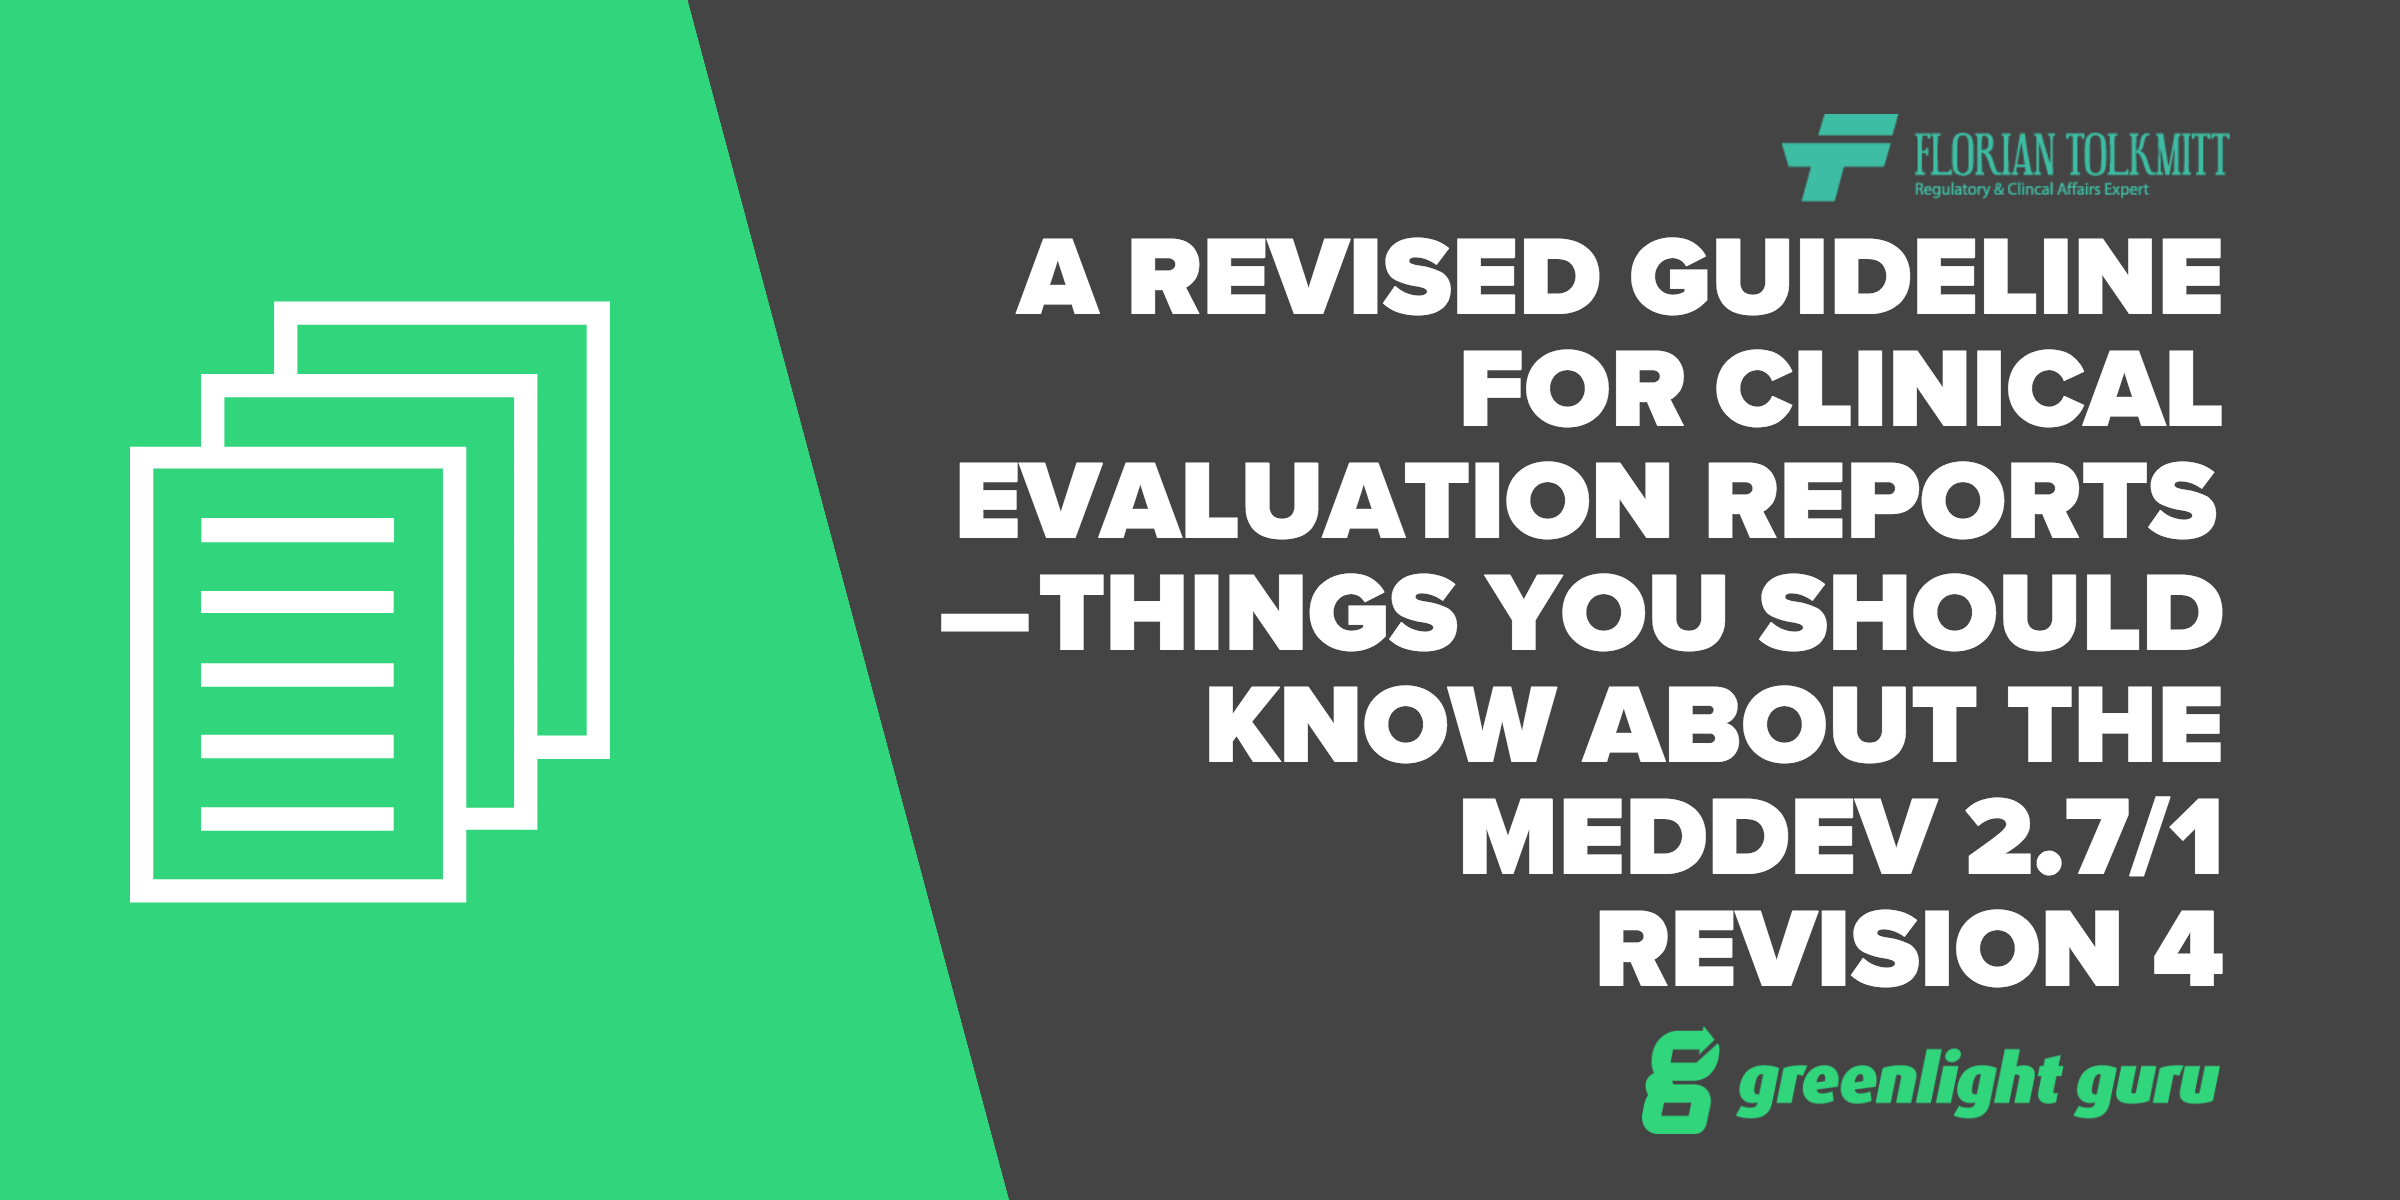 A Revised Guideline for Clinical Evaluation Reports — Things You Should Know About the MEDDEV 2.7/1 Revision 4 - Featured Image